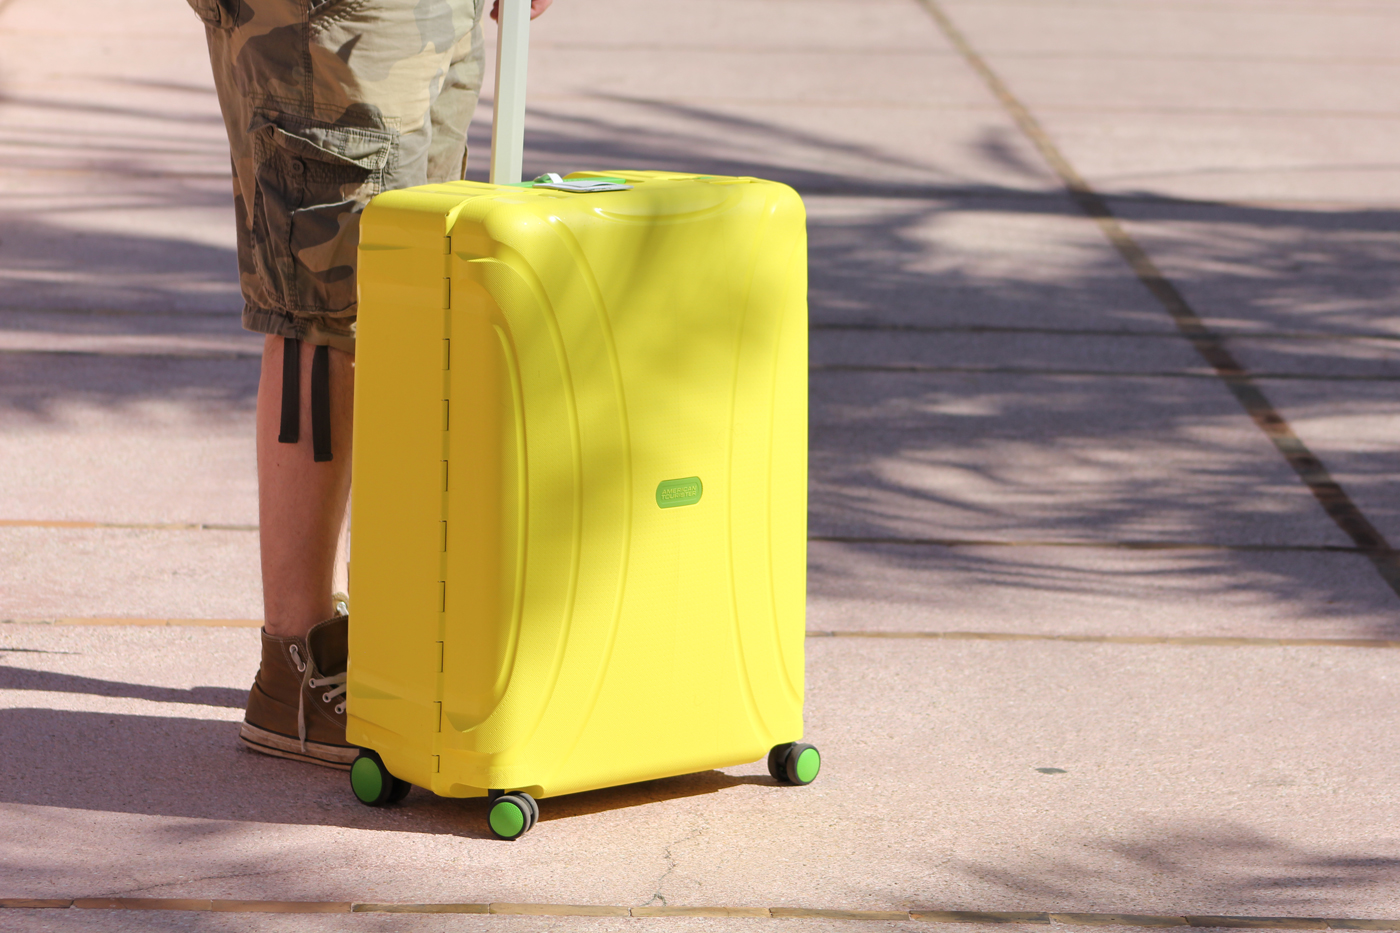 American Tourister Lock N Roll Spinner Luggage Review